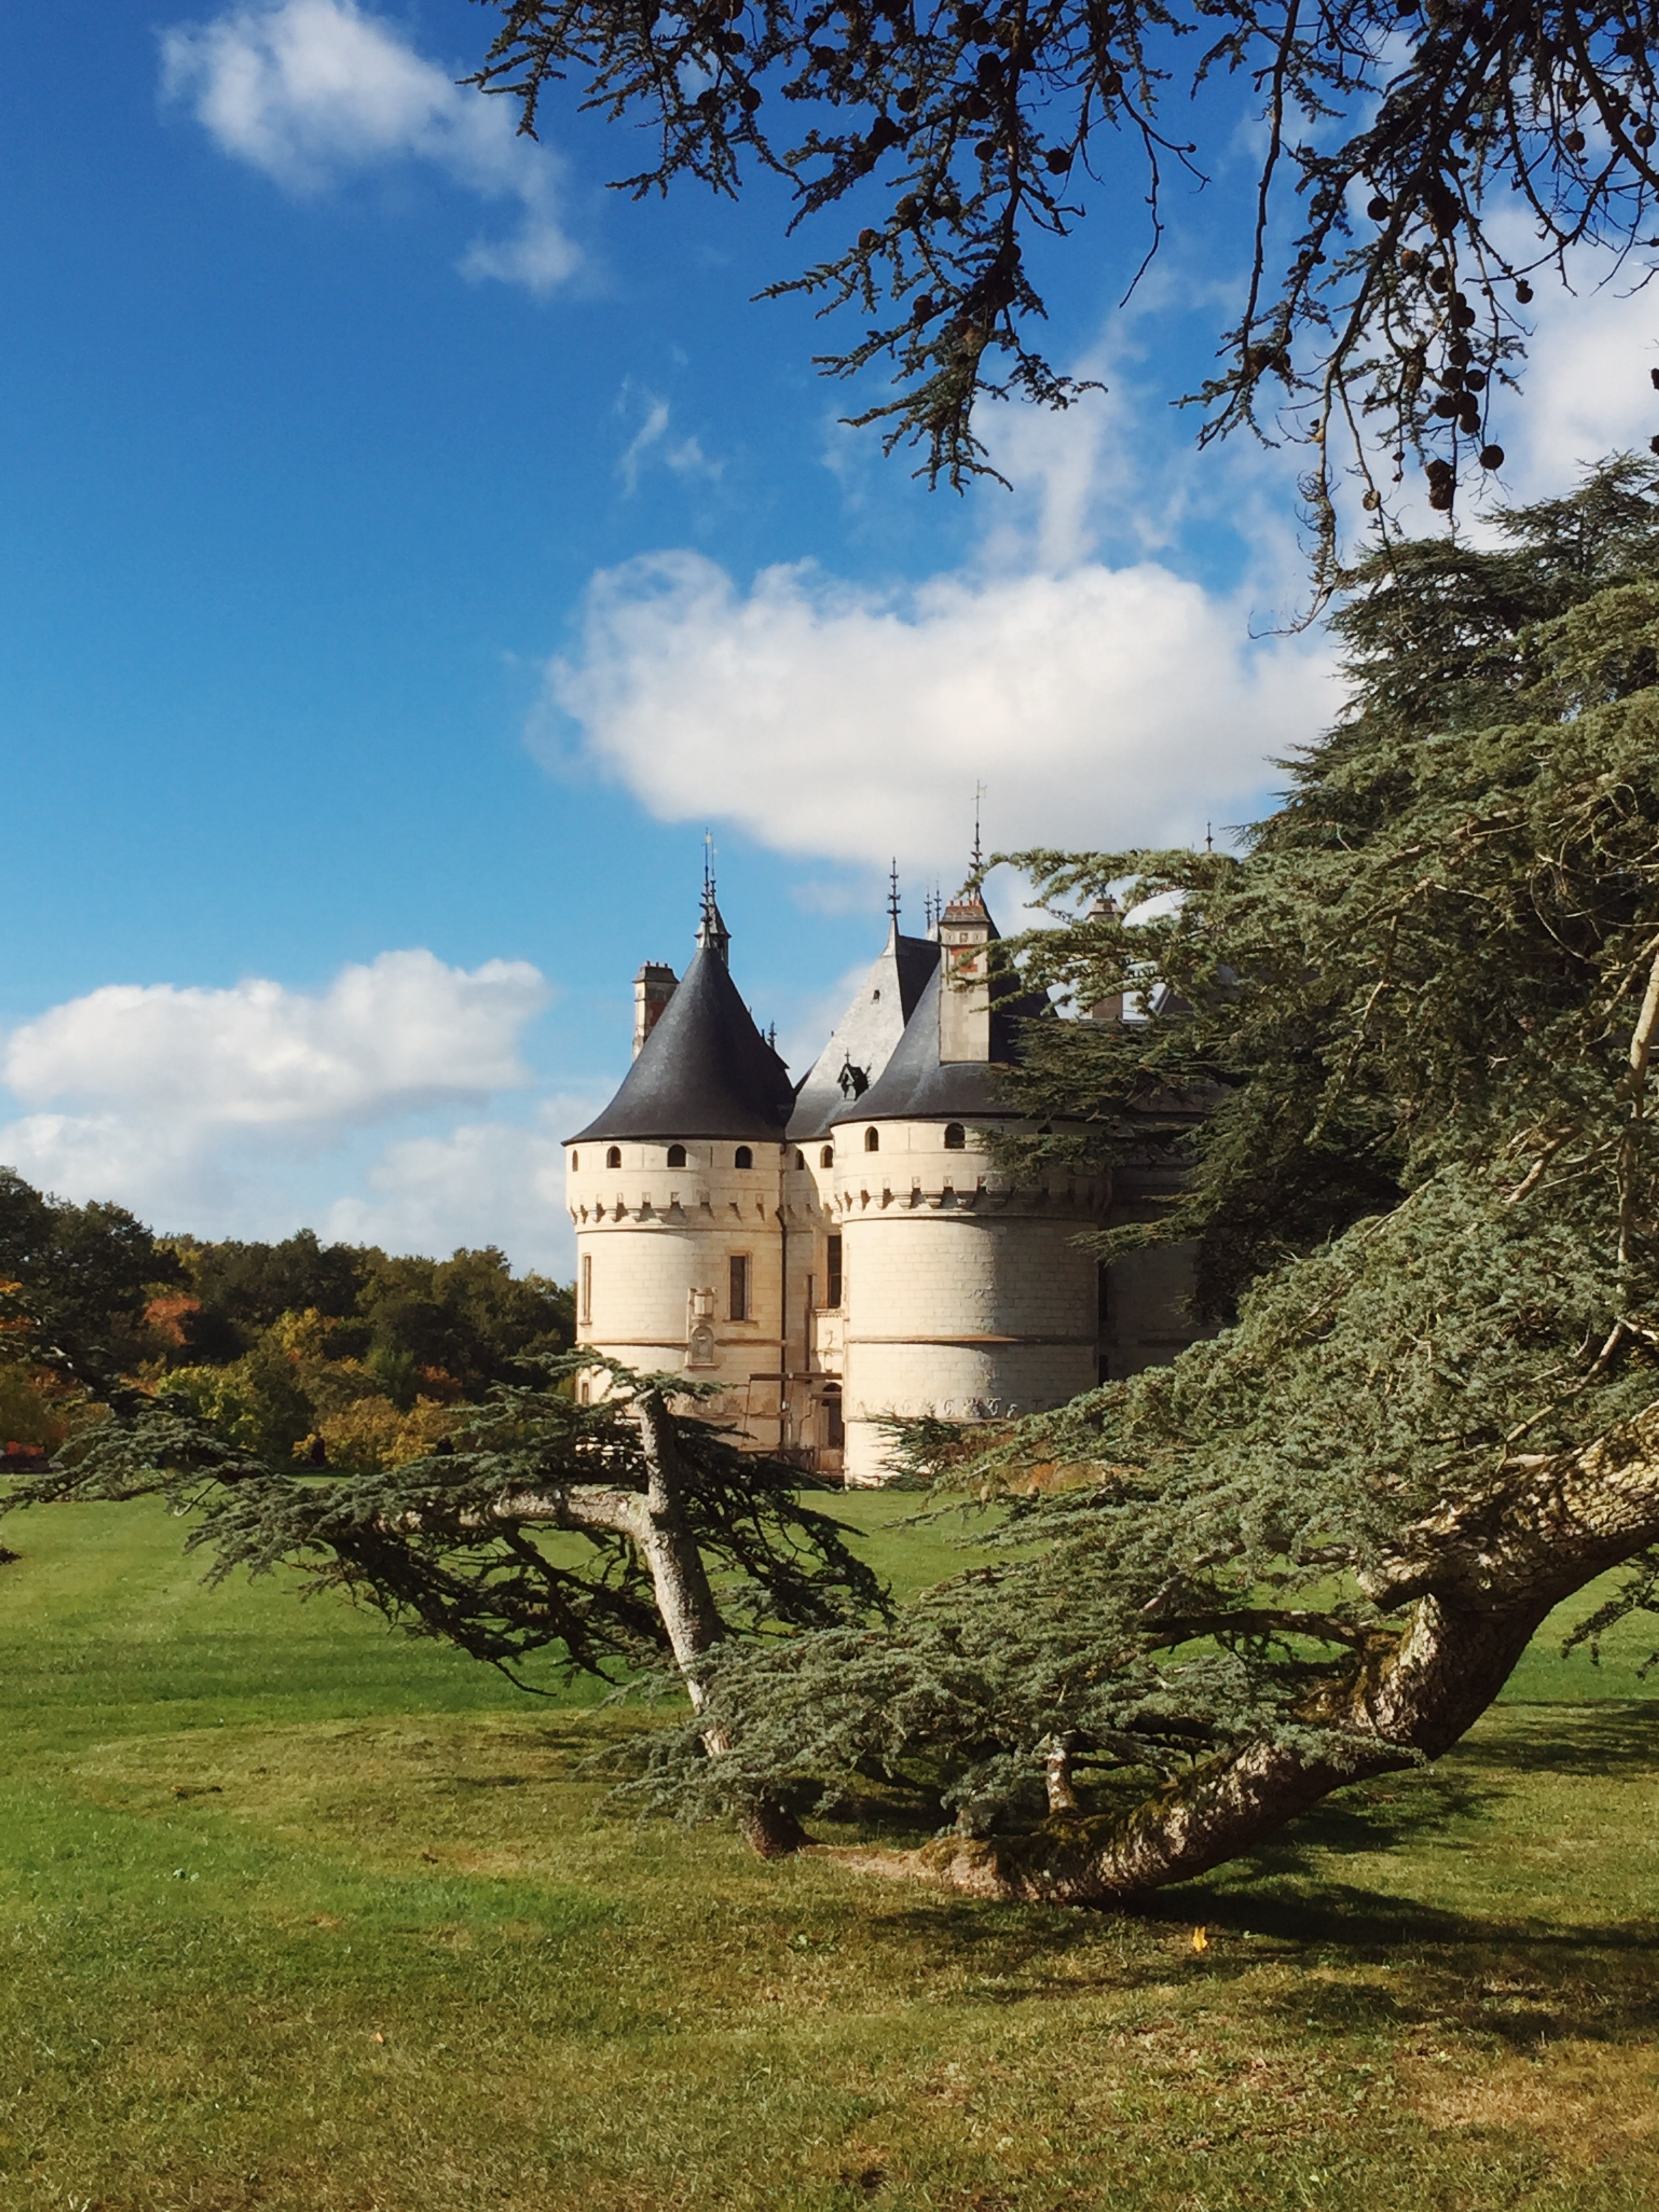 Autumn decorating at Chateau Chaumont